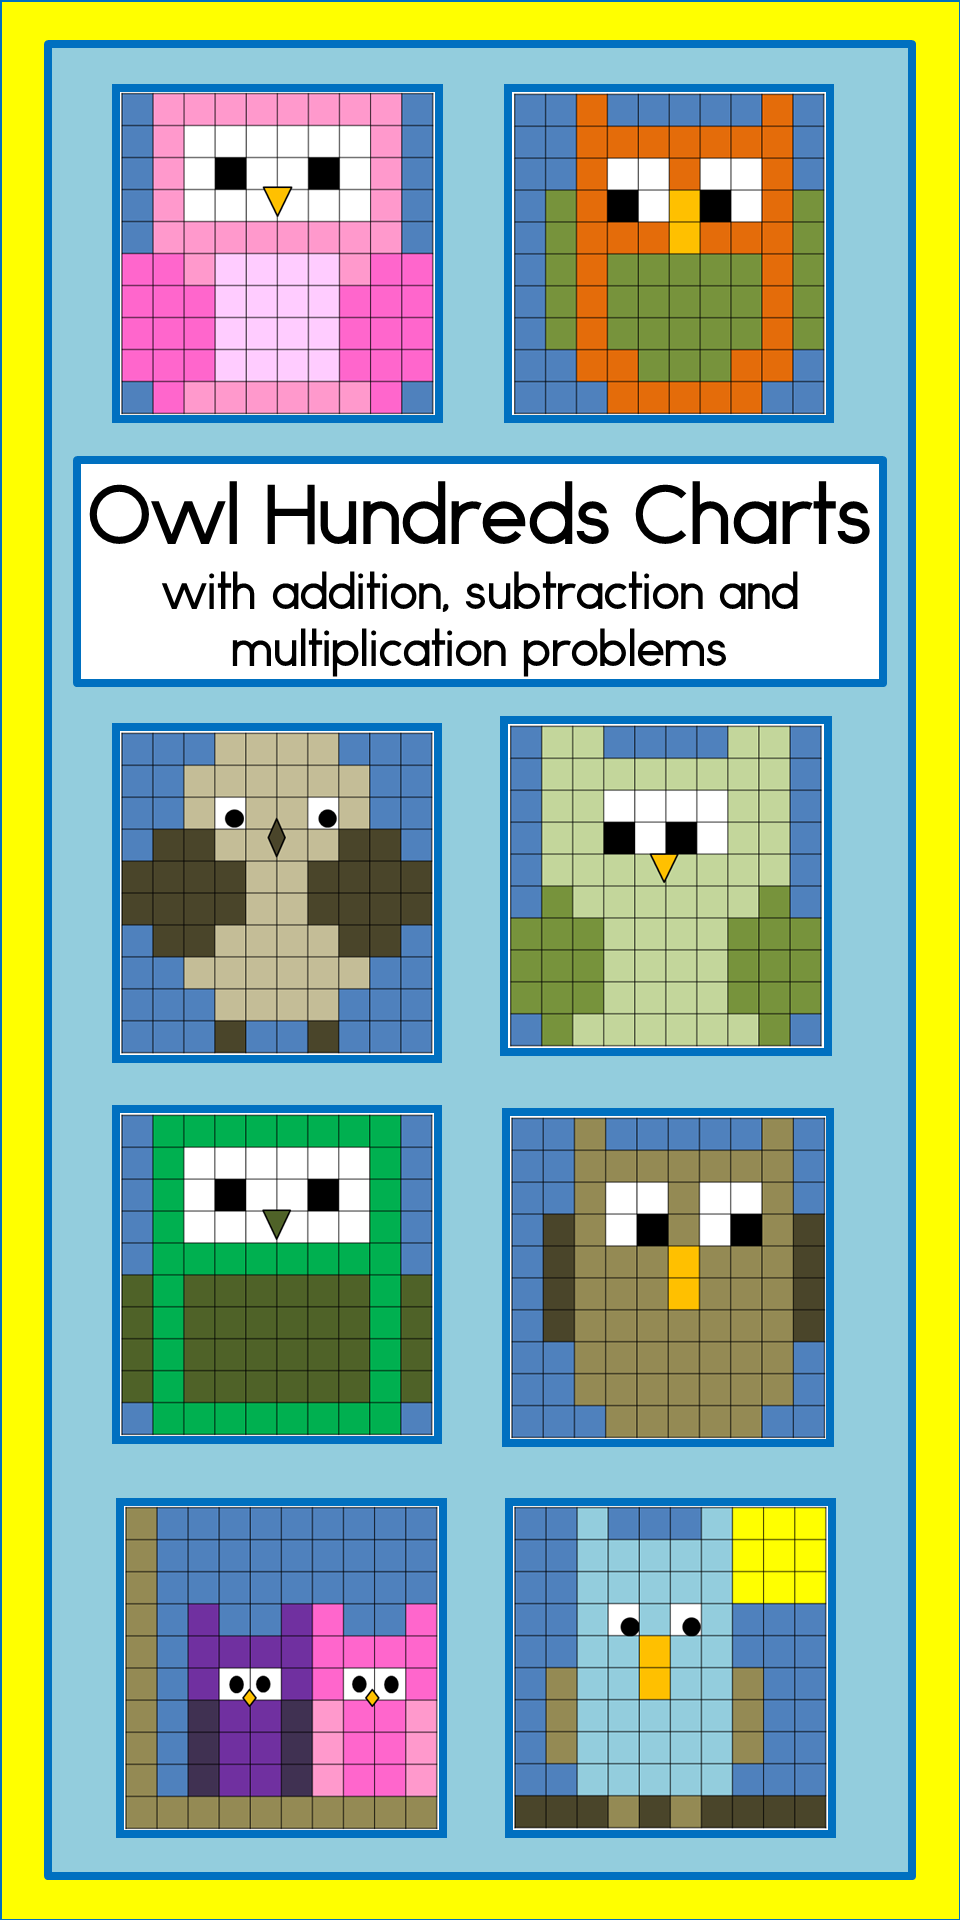 Owls hundreds charts with addition, subtraction and multiplication ...